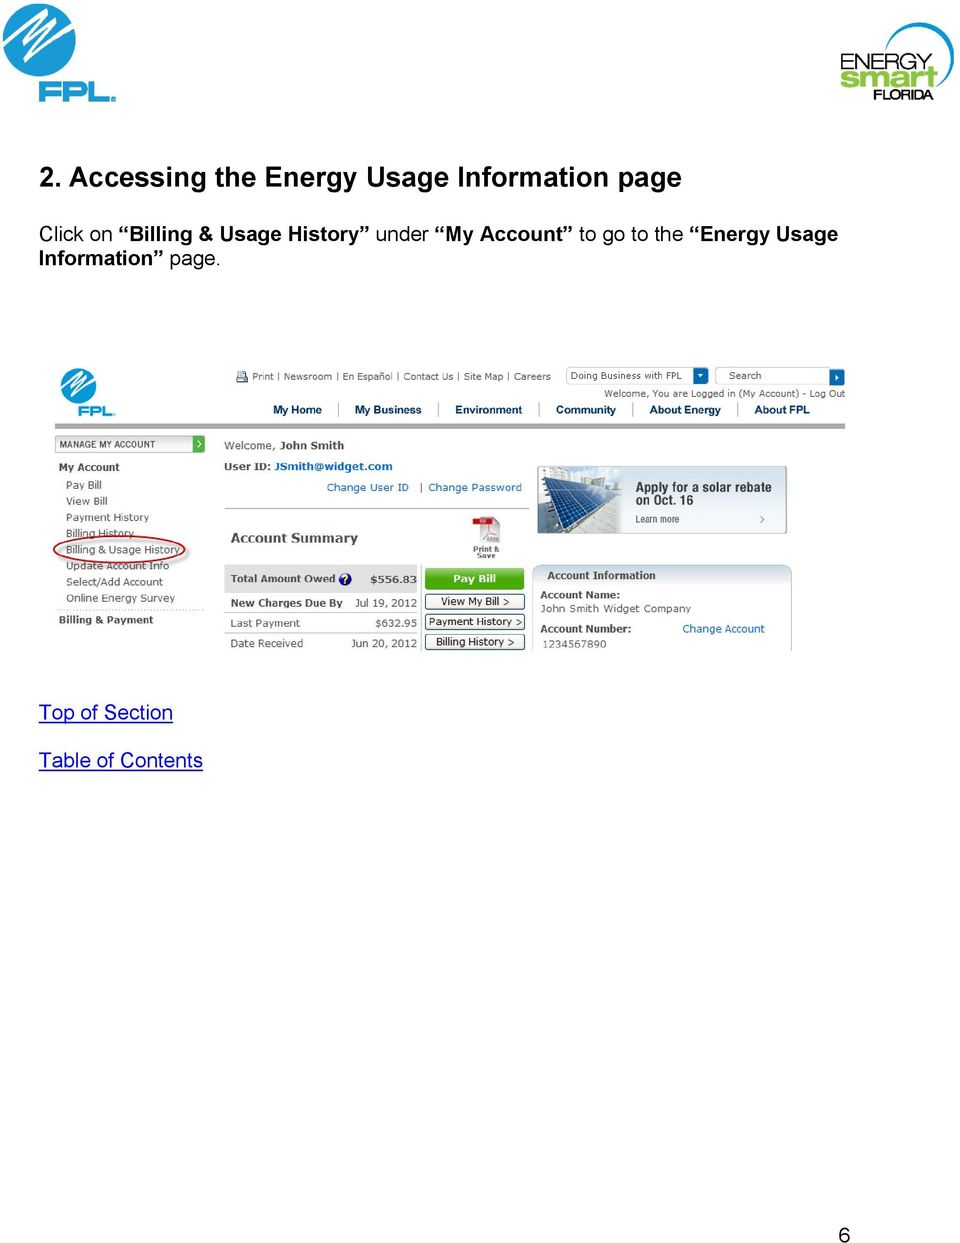 My Account to go to the Energy Usage